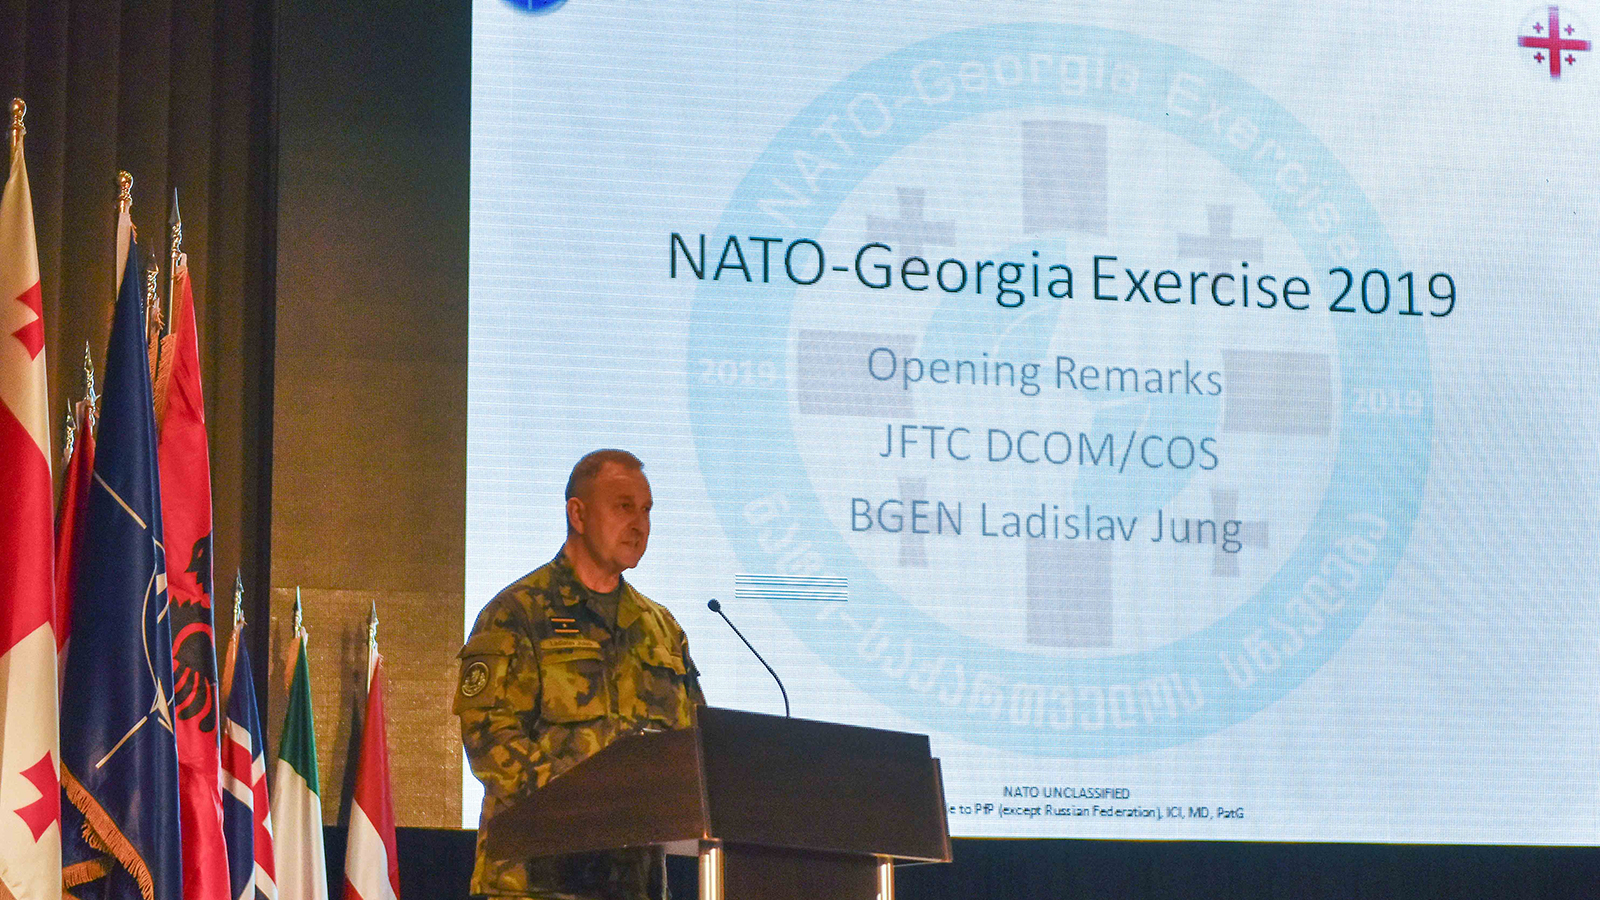 NATO-Georgia Exercise 2019 Kicked Off in Krtsanisi